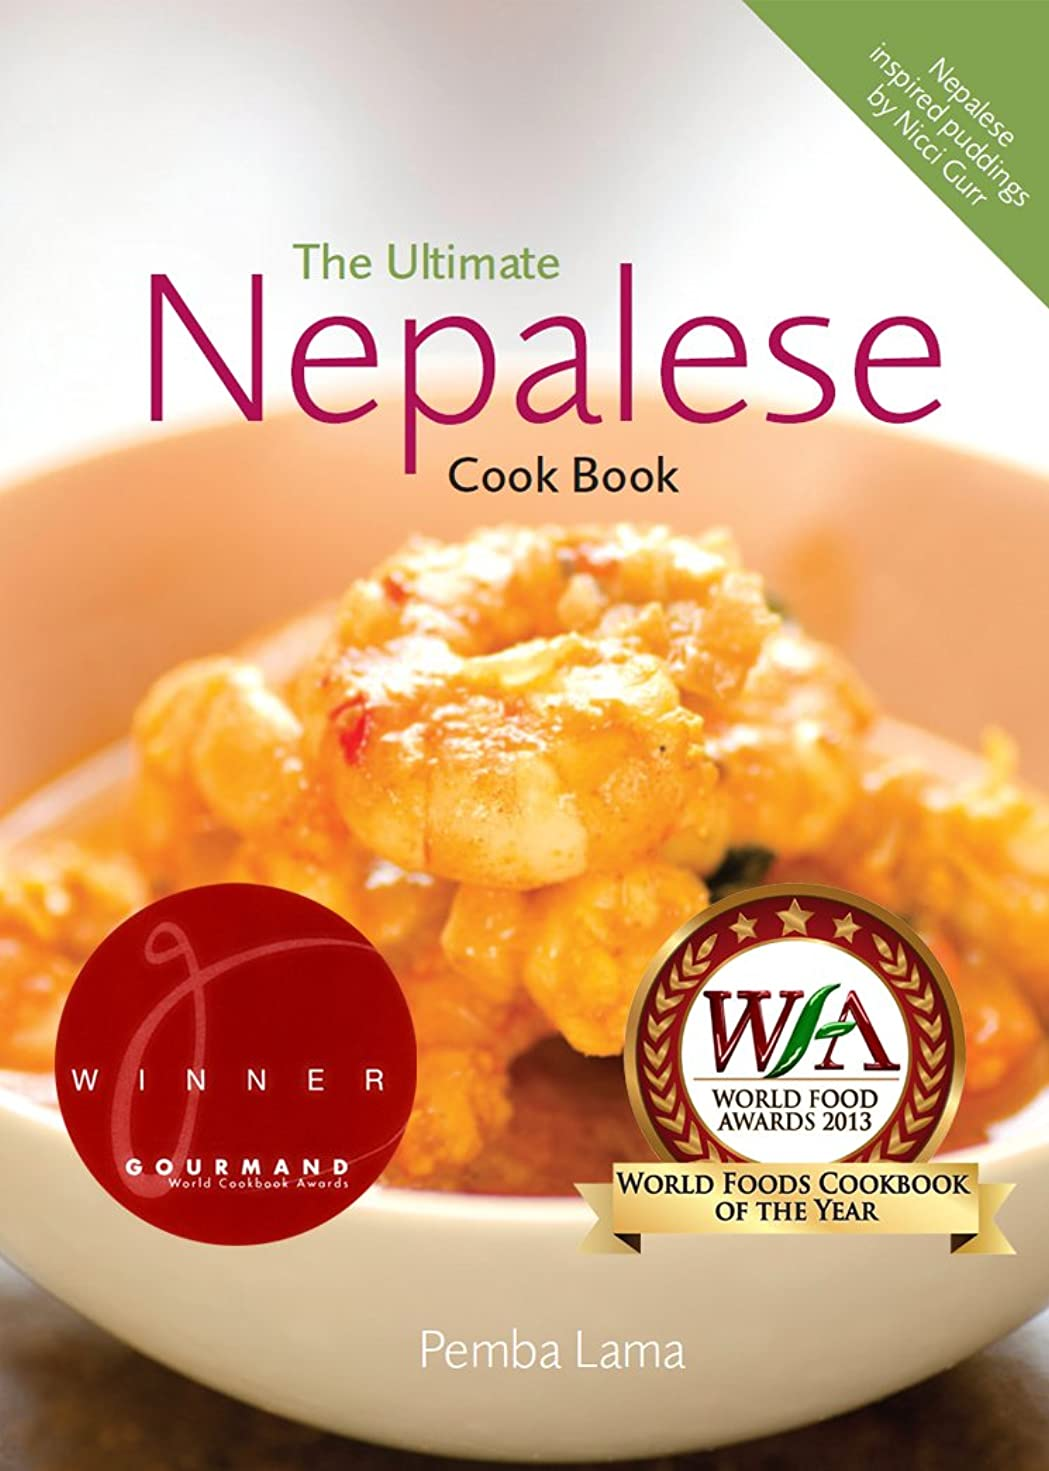 民間プレビュー削除するThe Ultimate Nepalese Cook Book (English Edition)